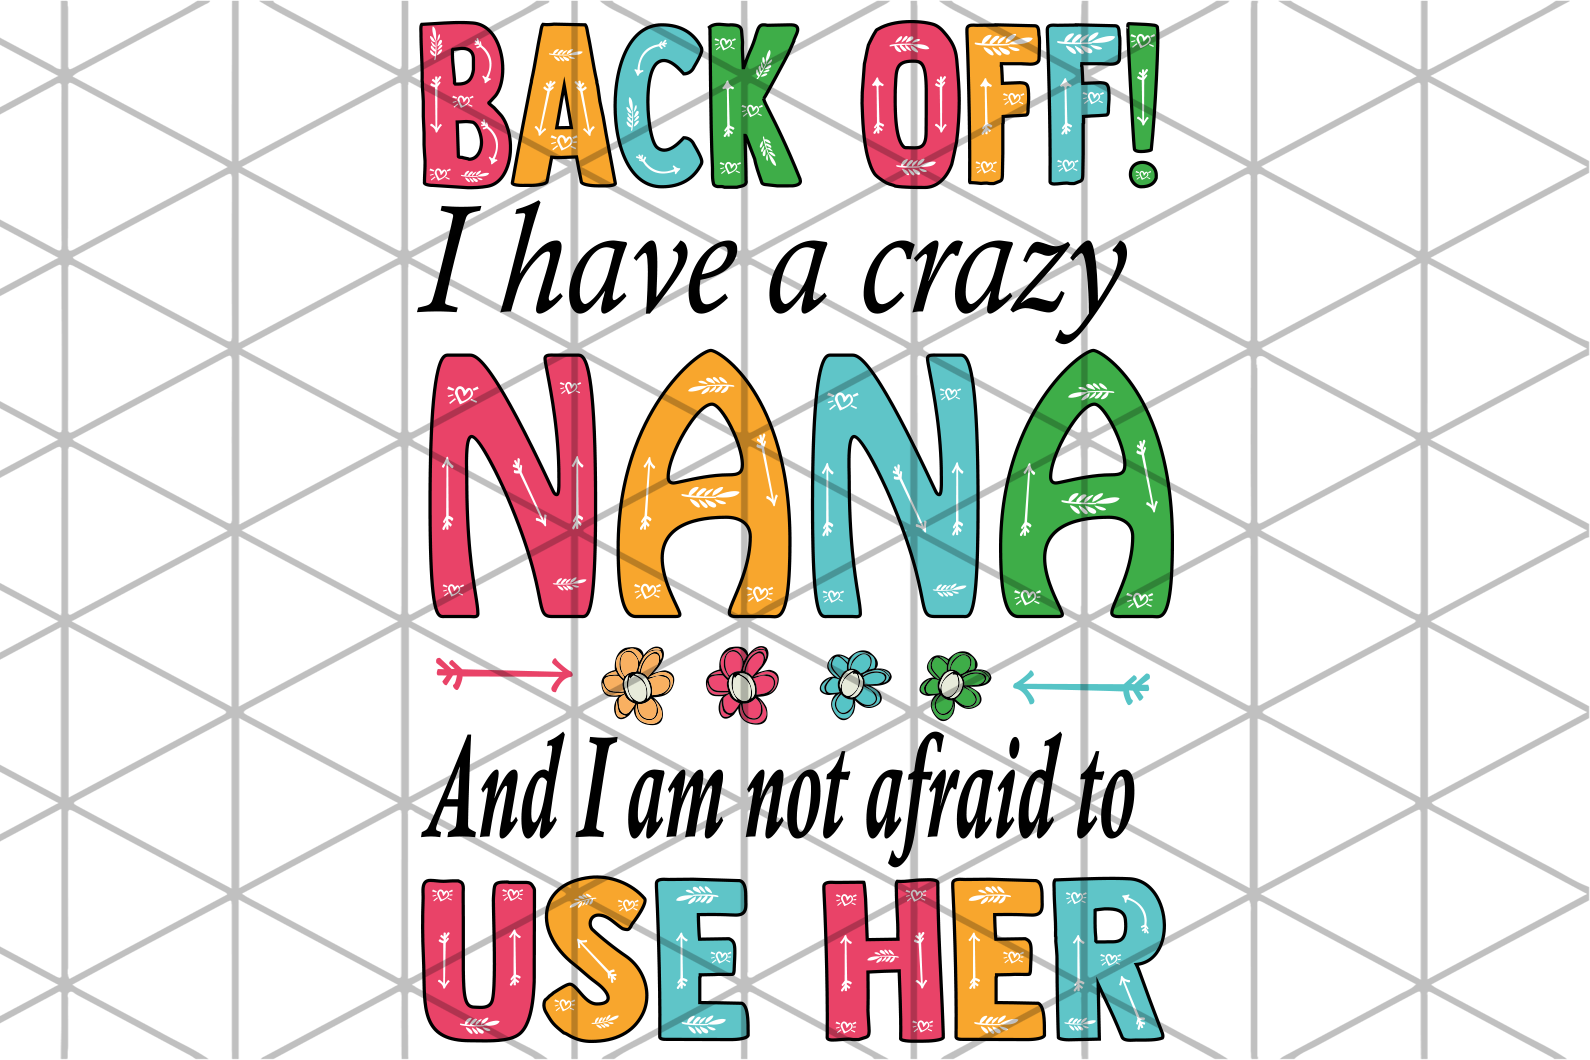 Back off I have a crazy nana,  nana svg, nana shirt, nana birthday, nana gift, family svg, family shirt,family gift,trending svg, Files For Silhouette, Files For Cricut, SVG, DXF, EPS, PNG, Instant Download